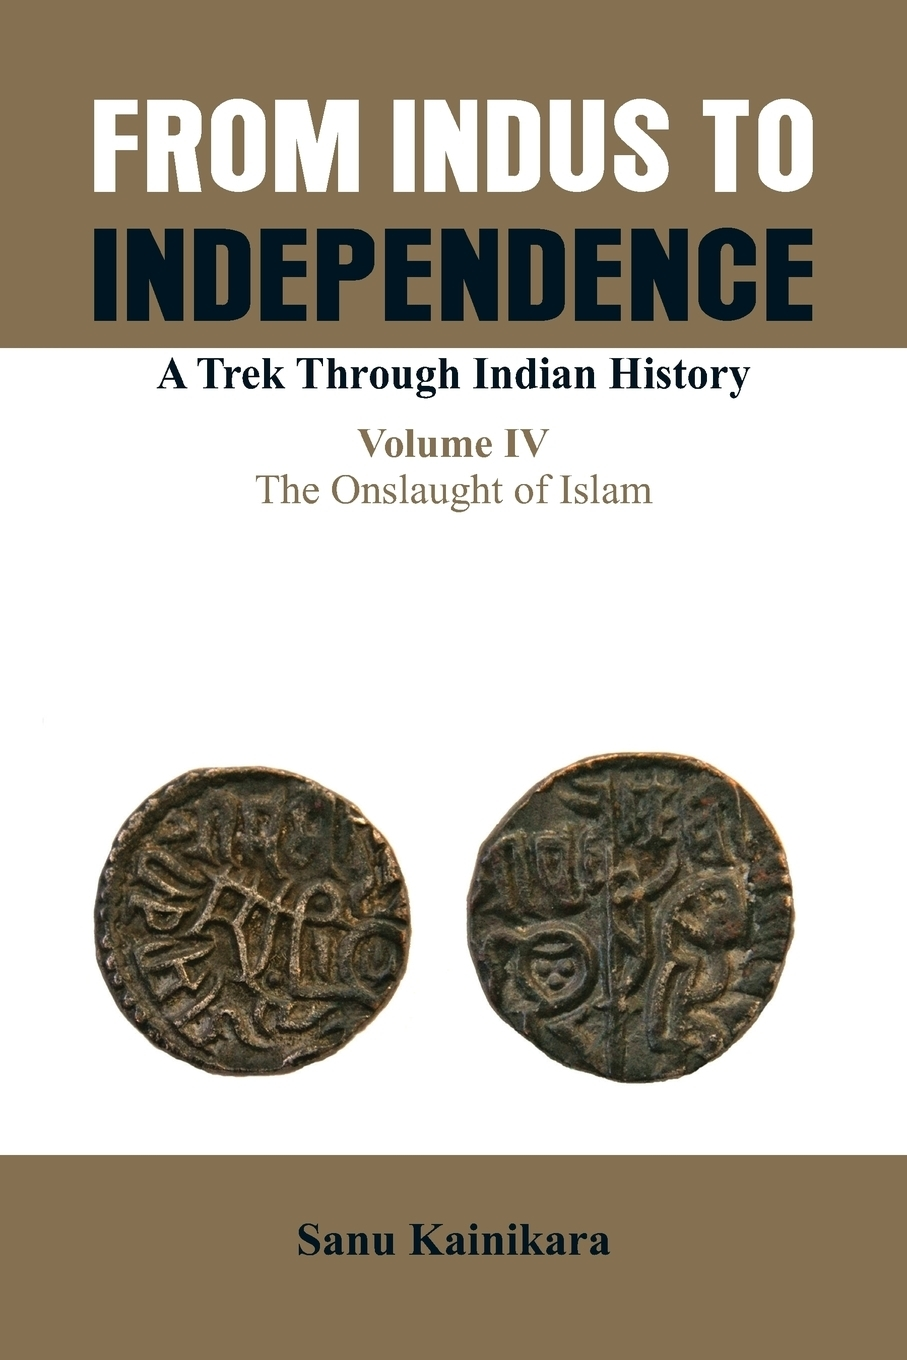 Dr Sanu Kainikara. From Indus to Independence. A Trek Through Indian History (Vol IV The Onslaught of Islam)